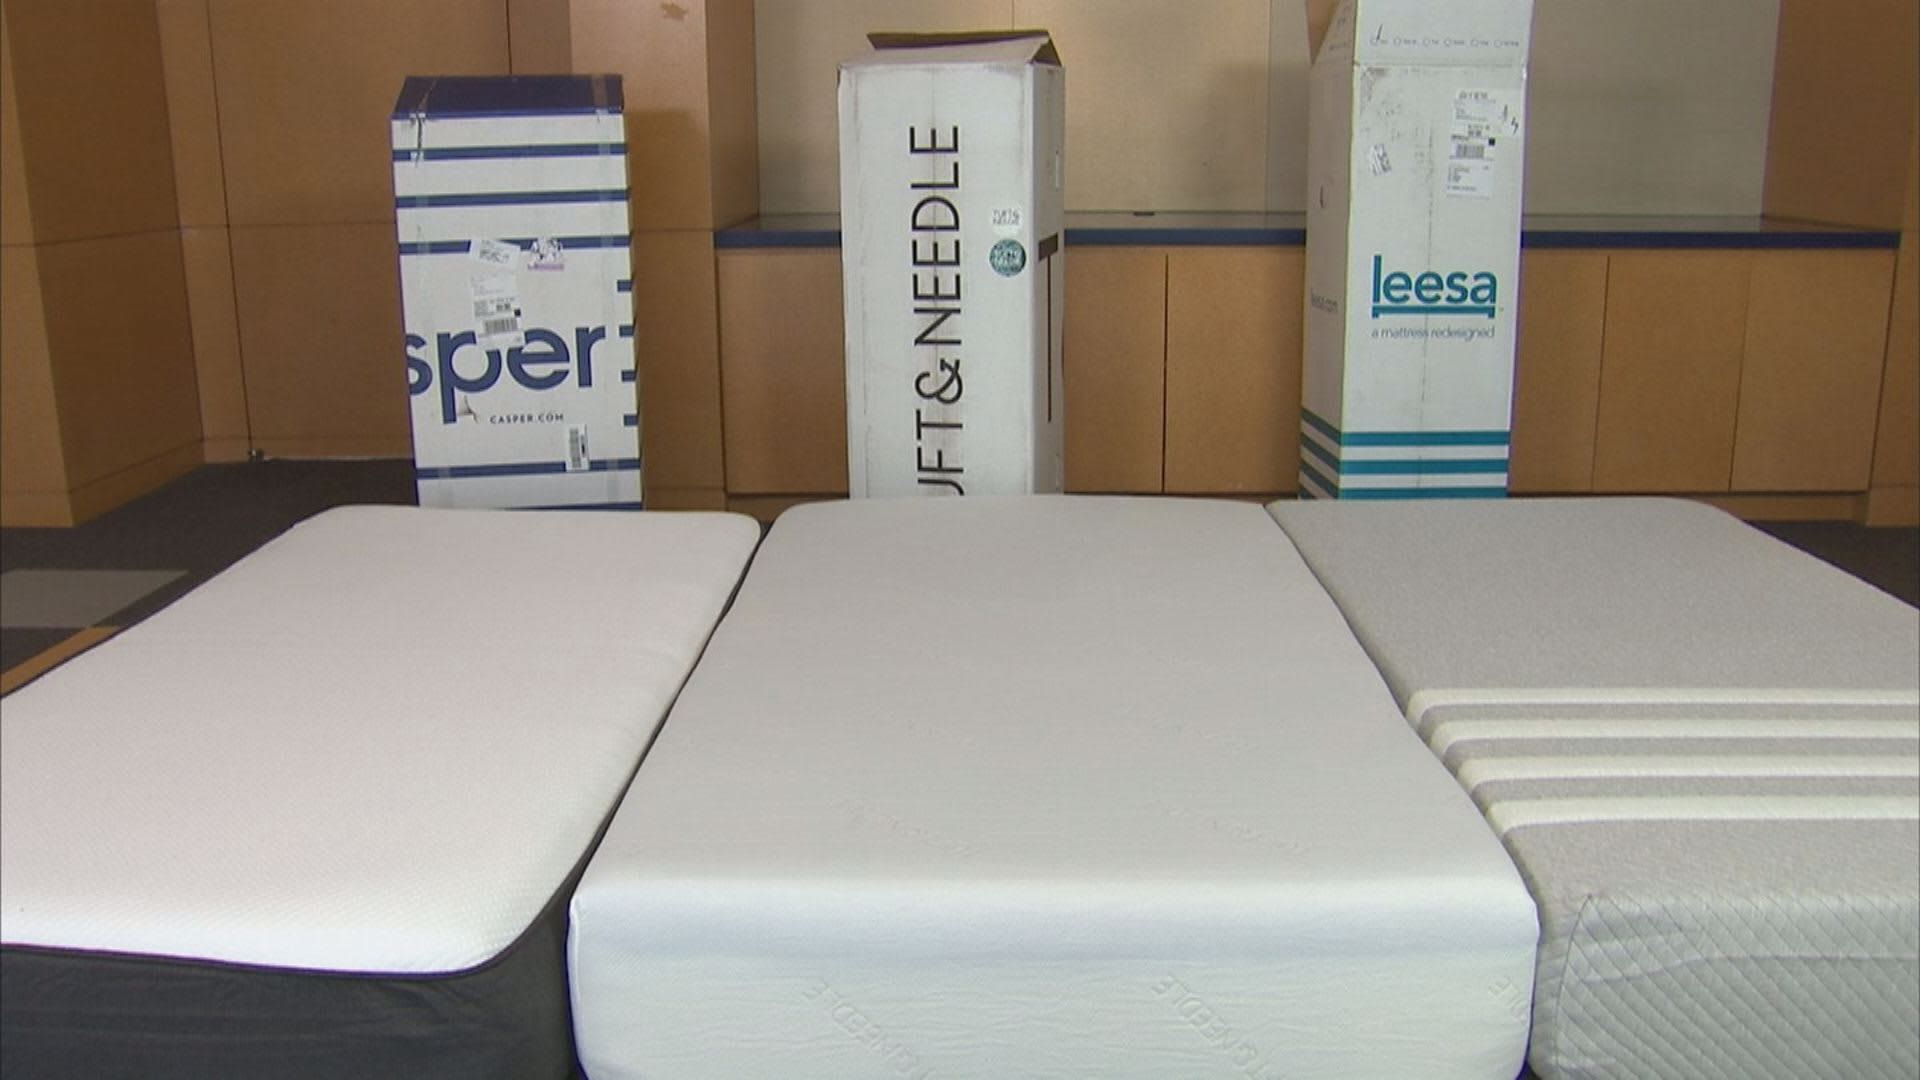 Casper Mattress Video We Bought Mattresses From 3 Different Companies Online And Here S